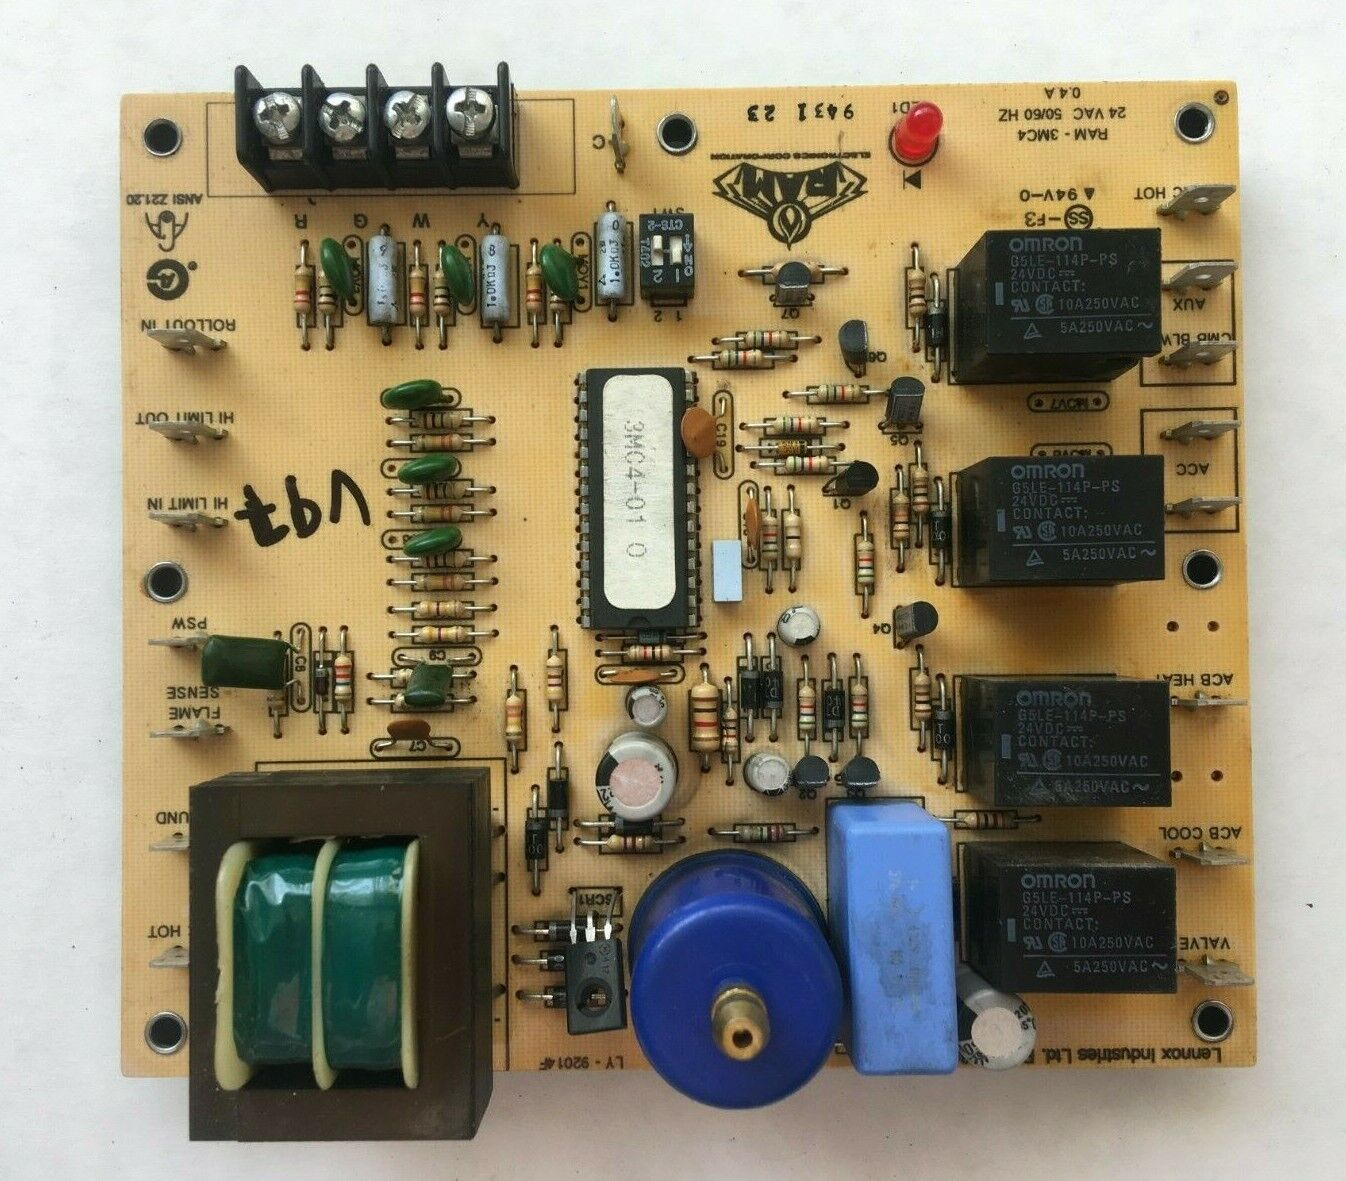 oem lennox 20j8001 ignition control circuit board ram-3mc4-01 ly92014j for  sale online | ebay  ebay